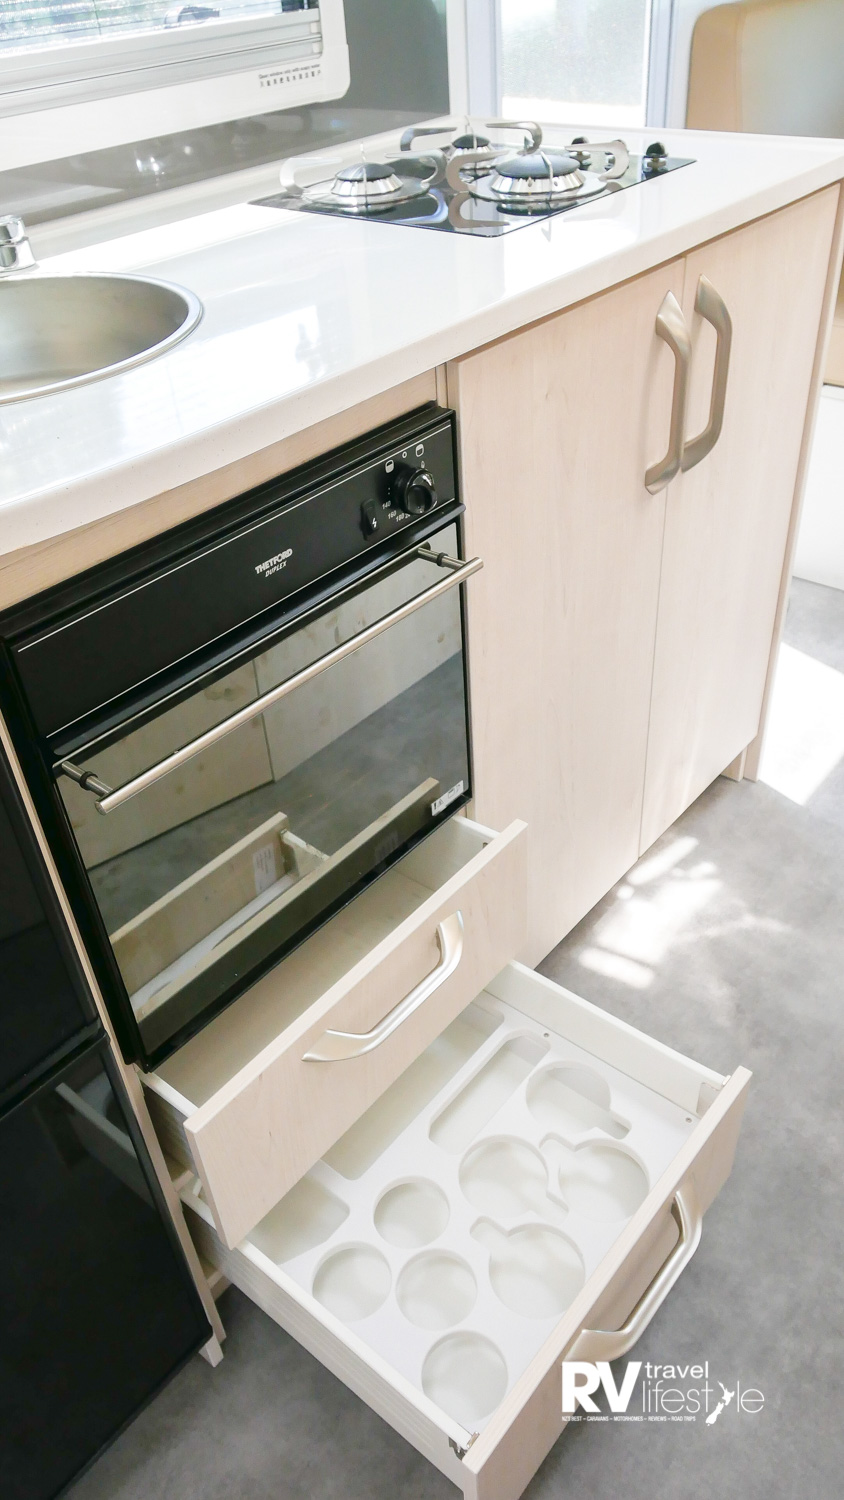 Classic style from Action – fitted crockery and glass slots in the kitchen drawer